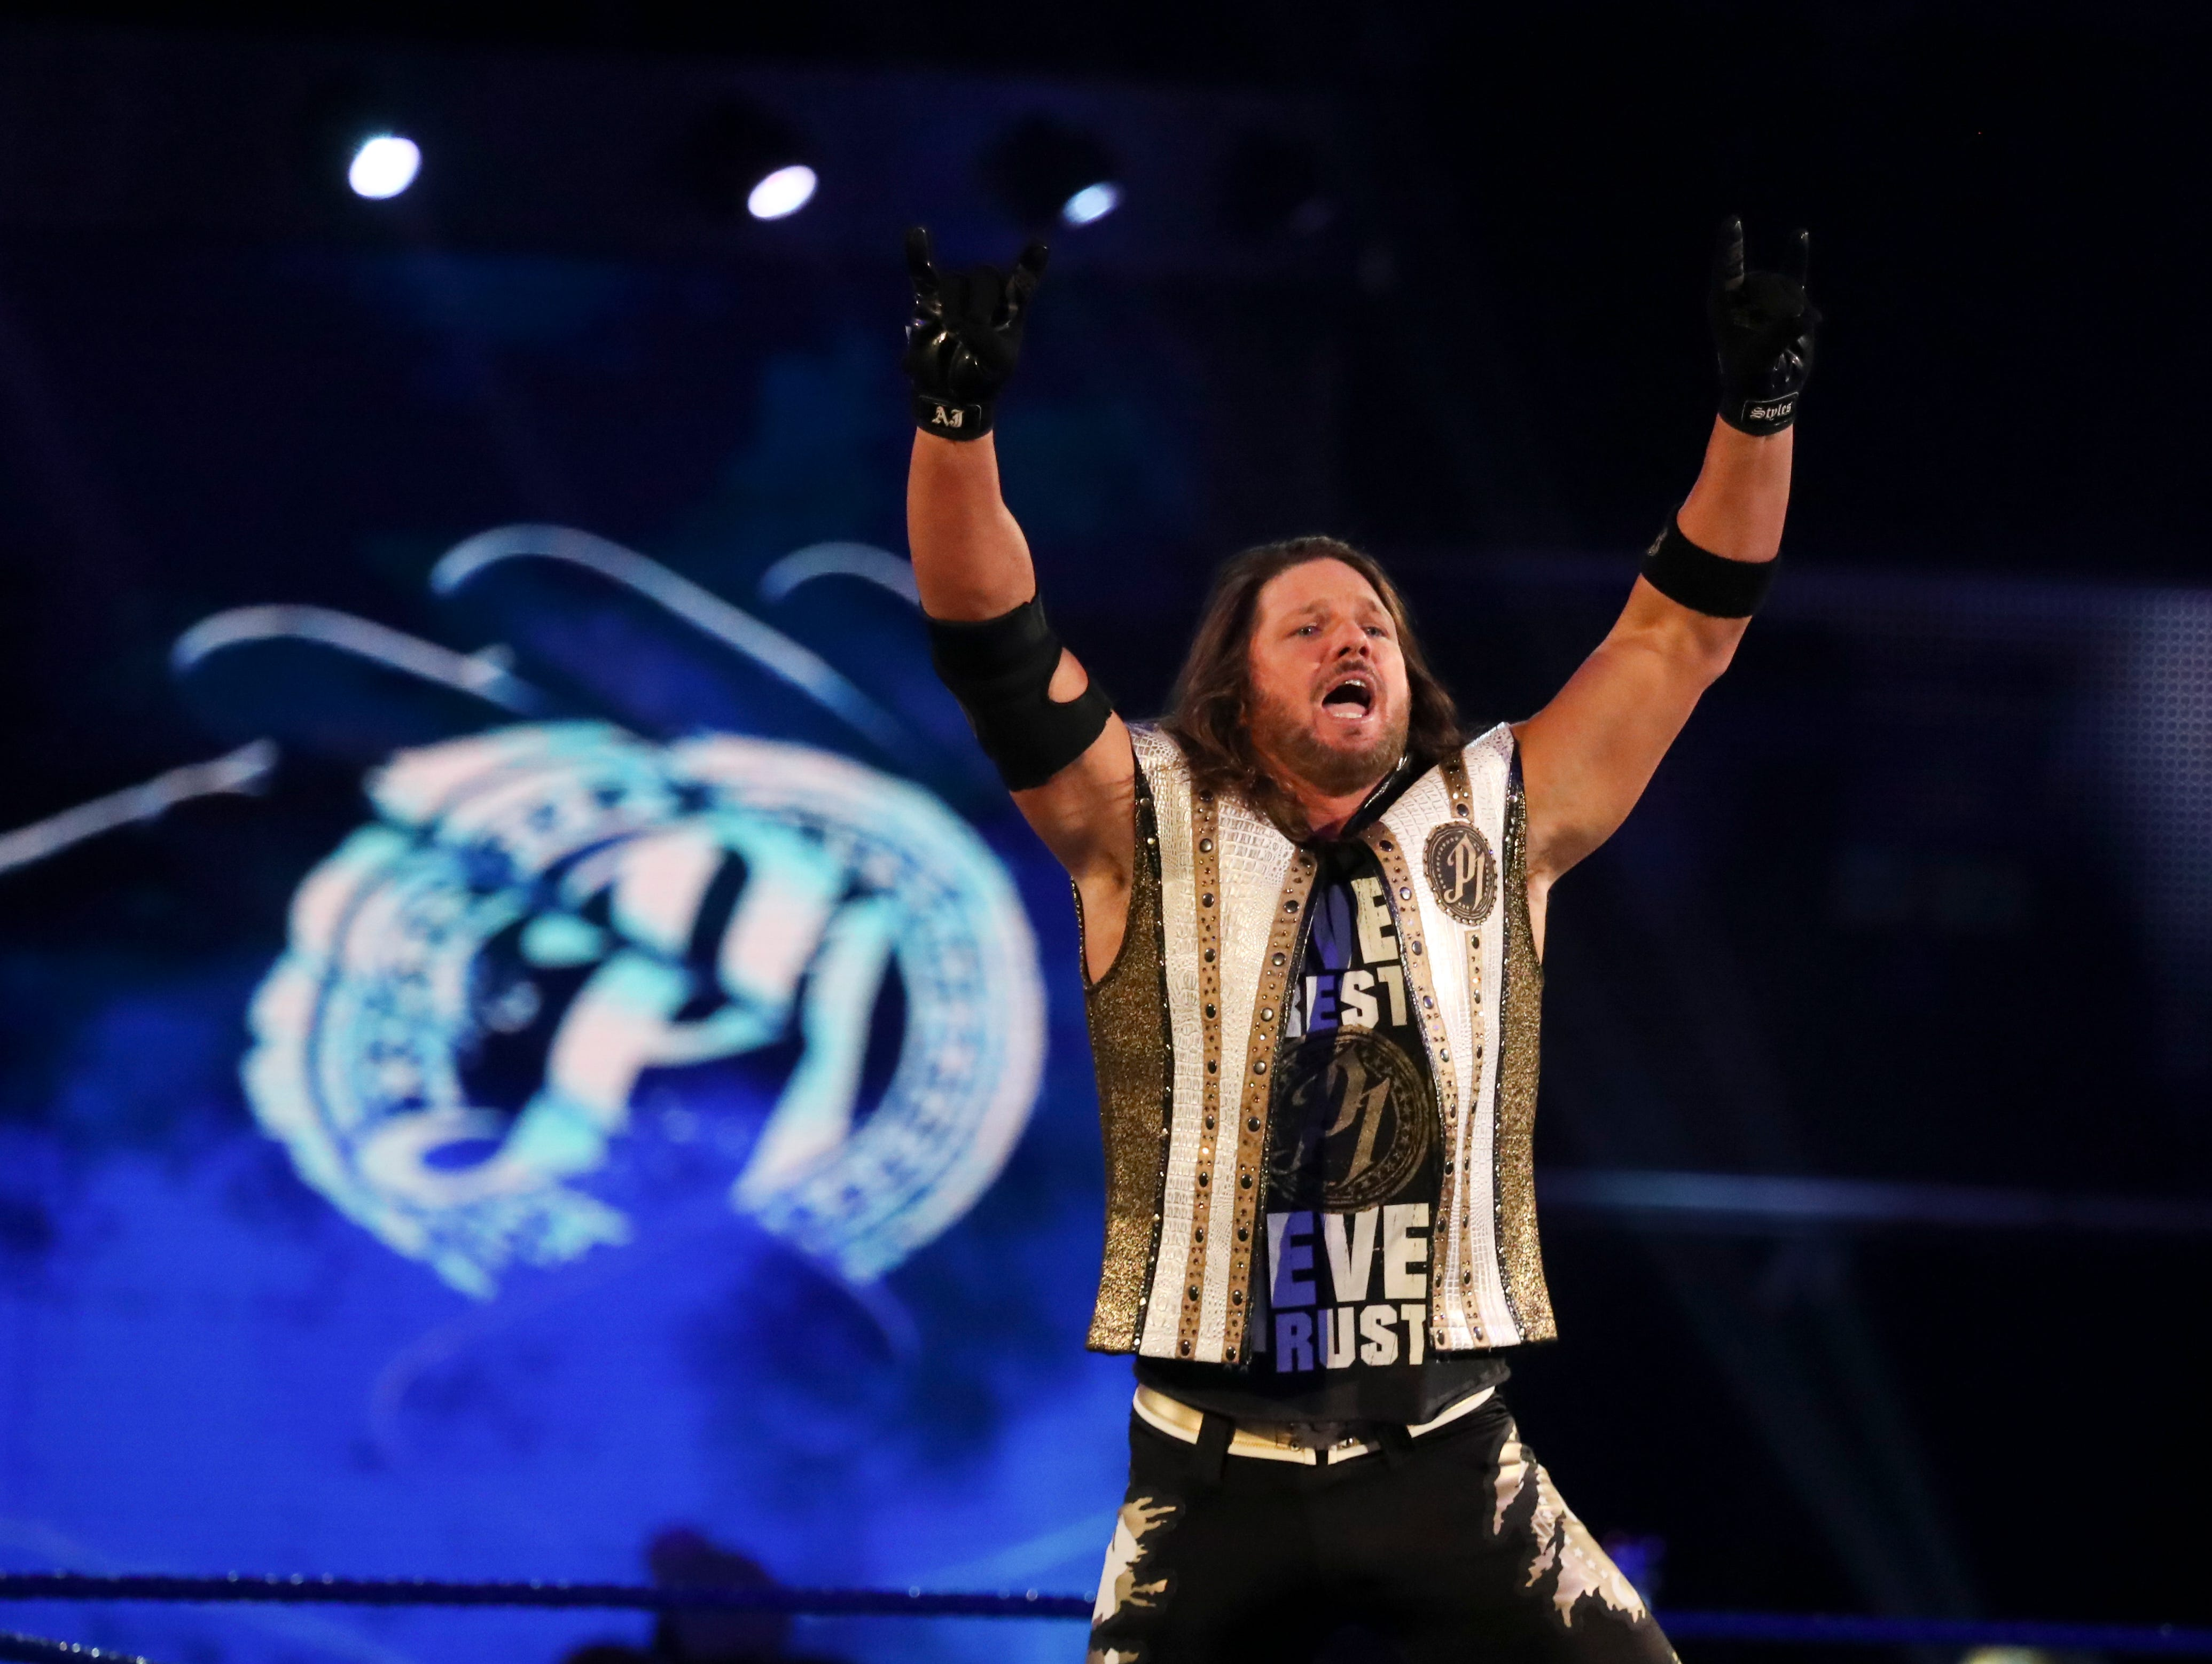 A.J. Styles pumps up the crowd during WWE Smackdown on May 7.